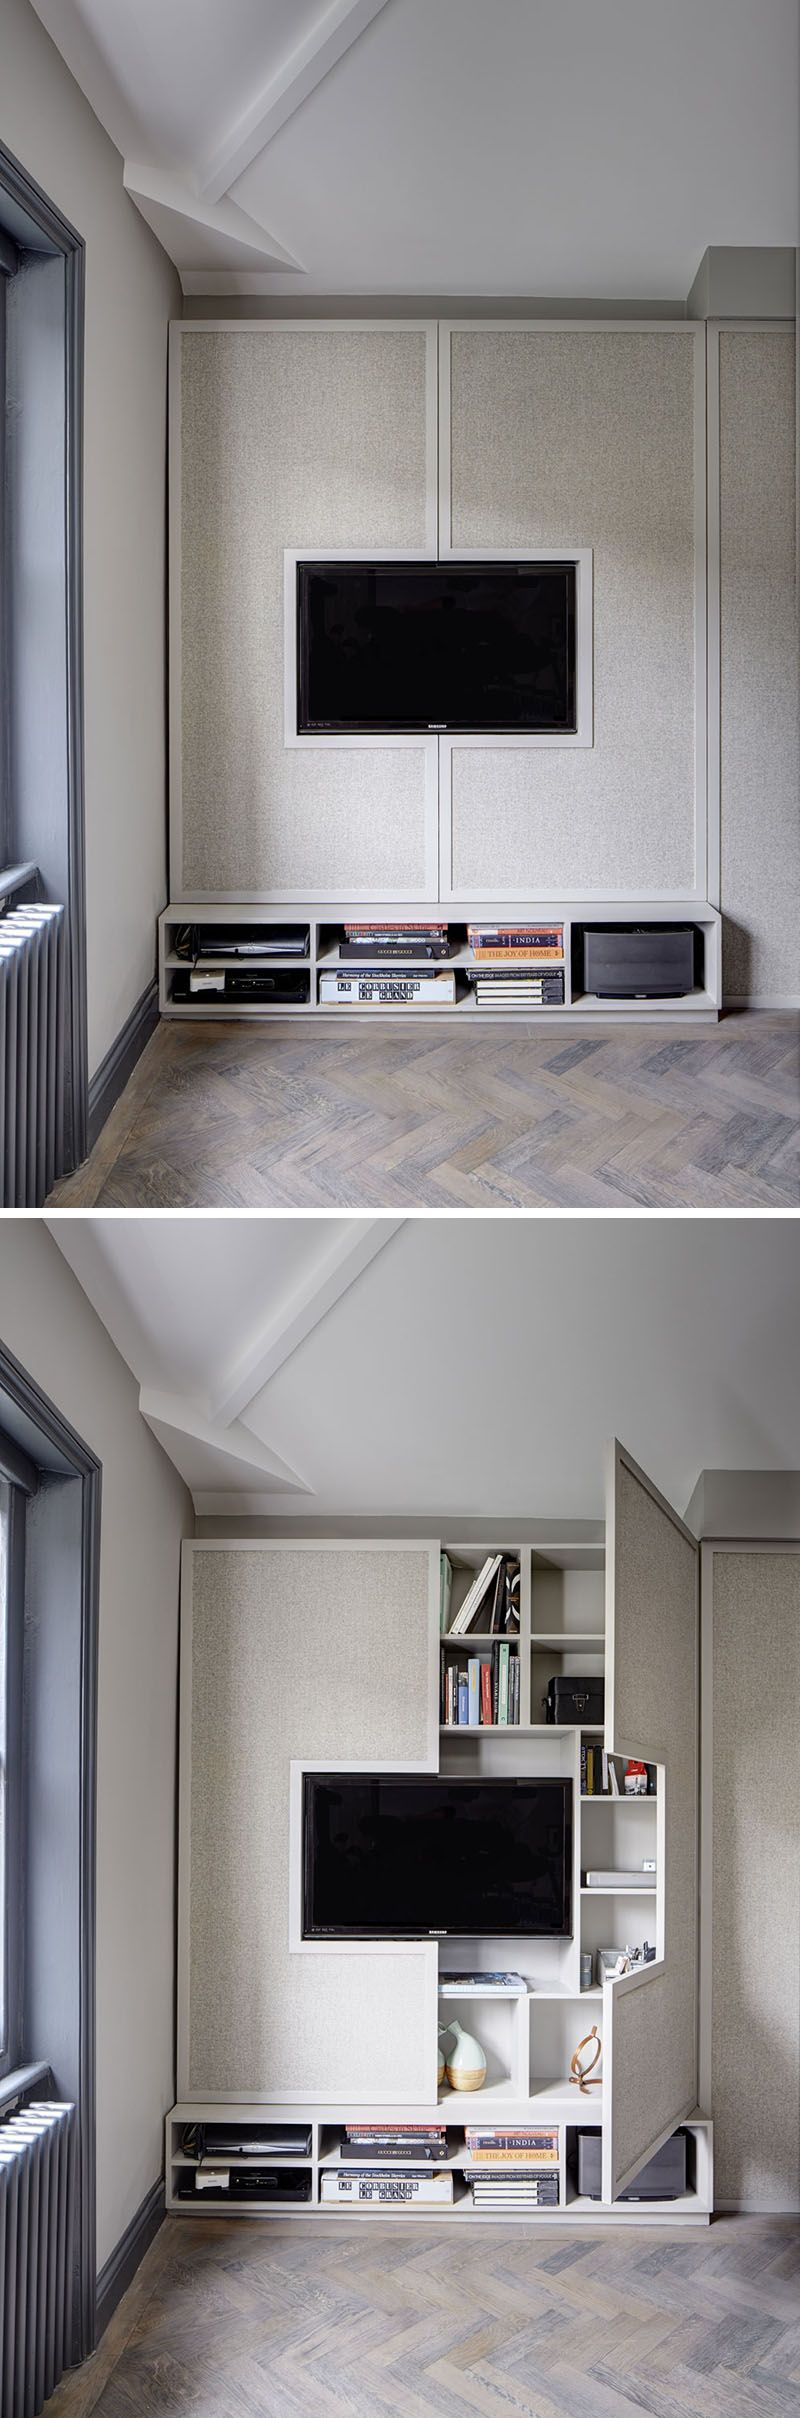 Tv Unit In Living Room: Hide Shelves With Large Custom-Made